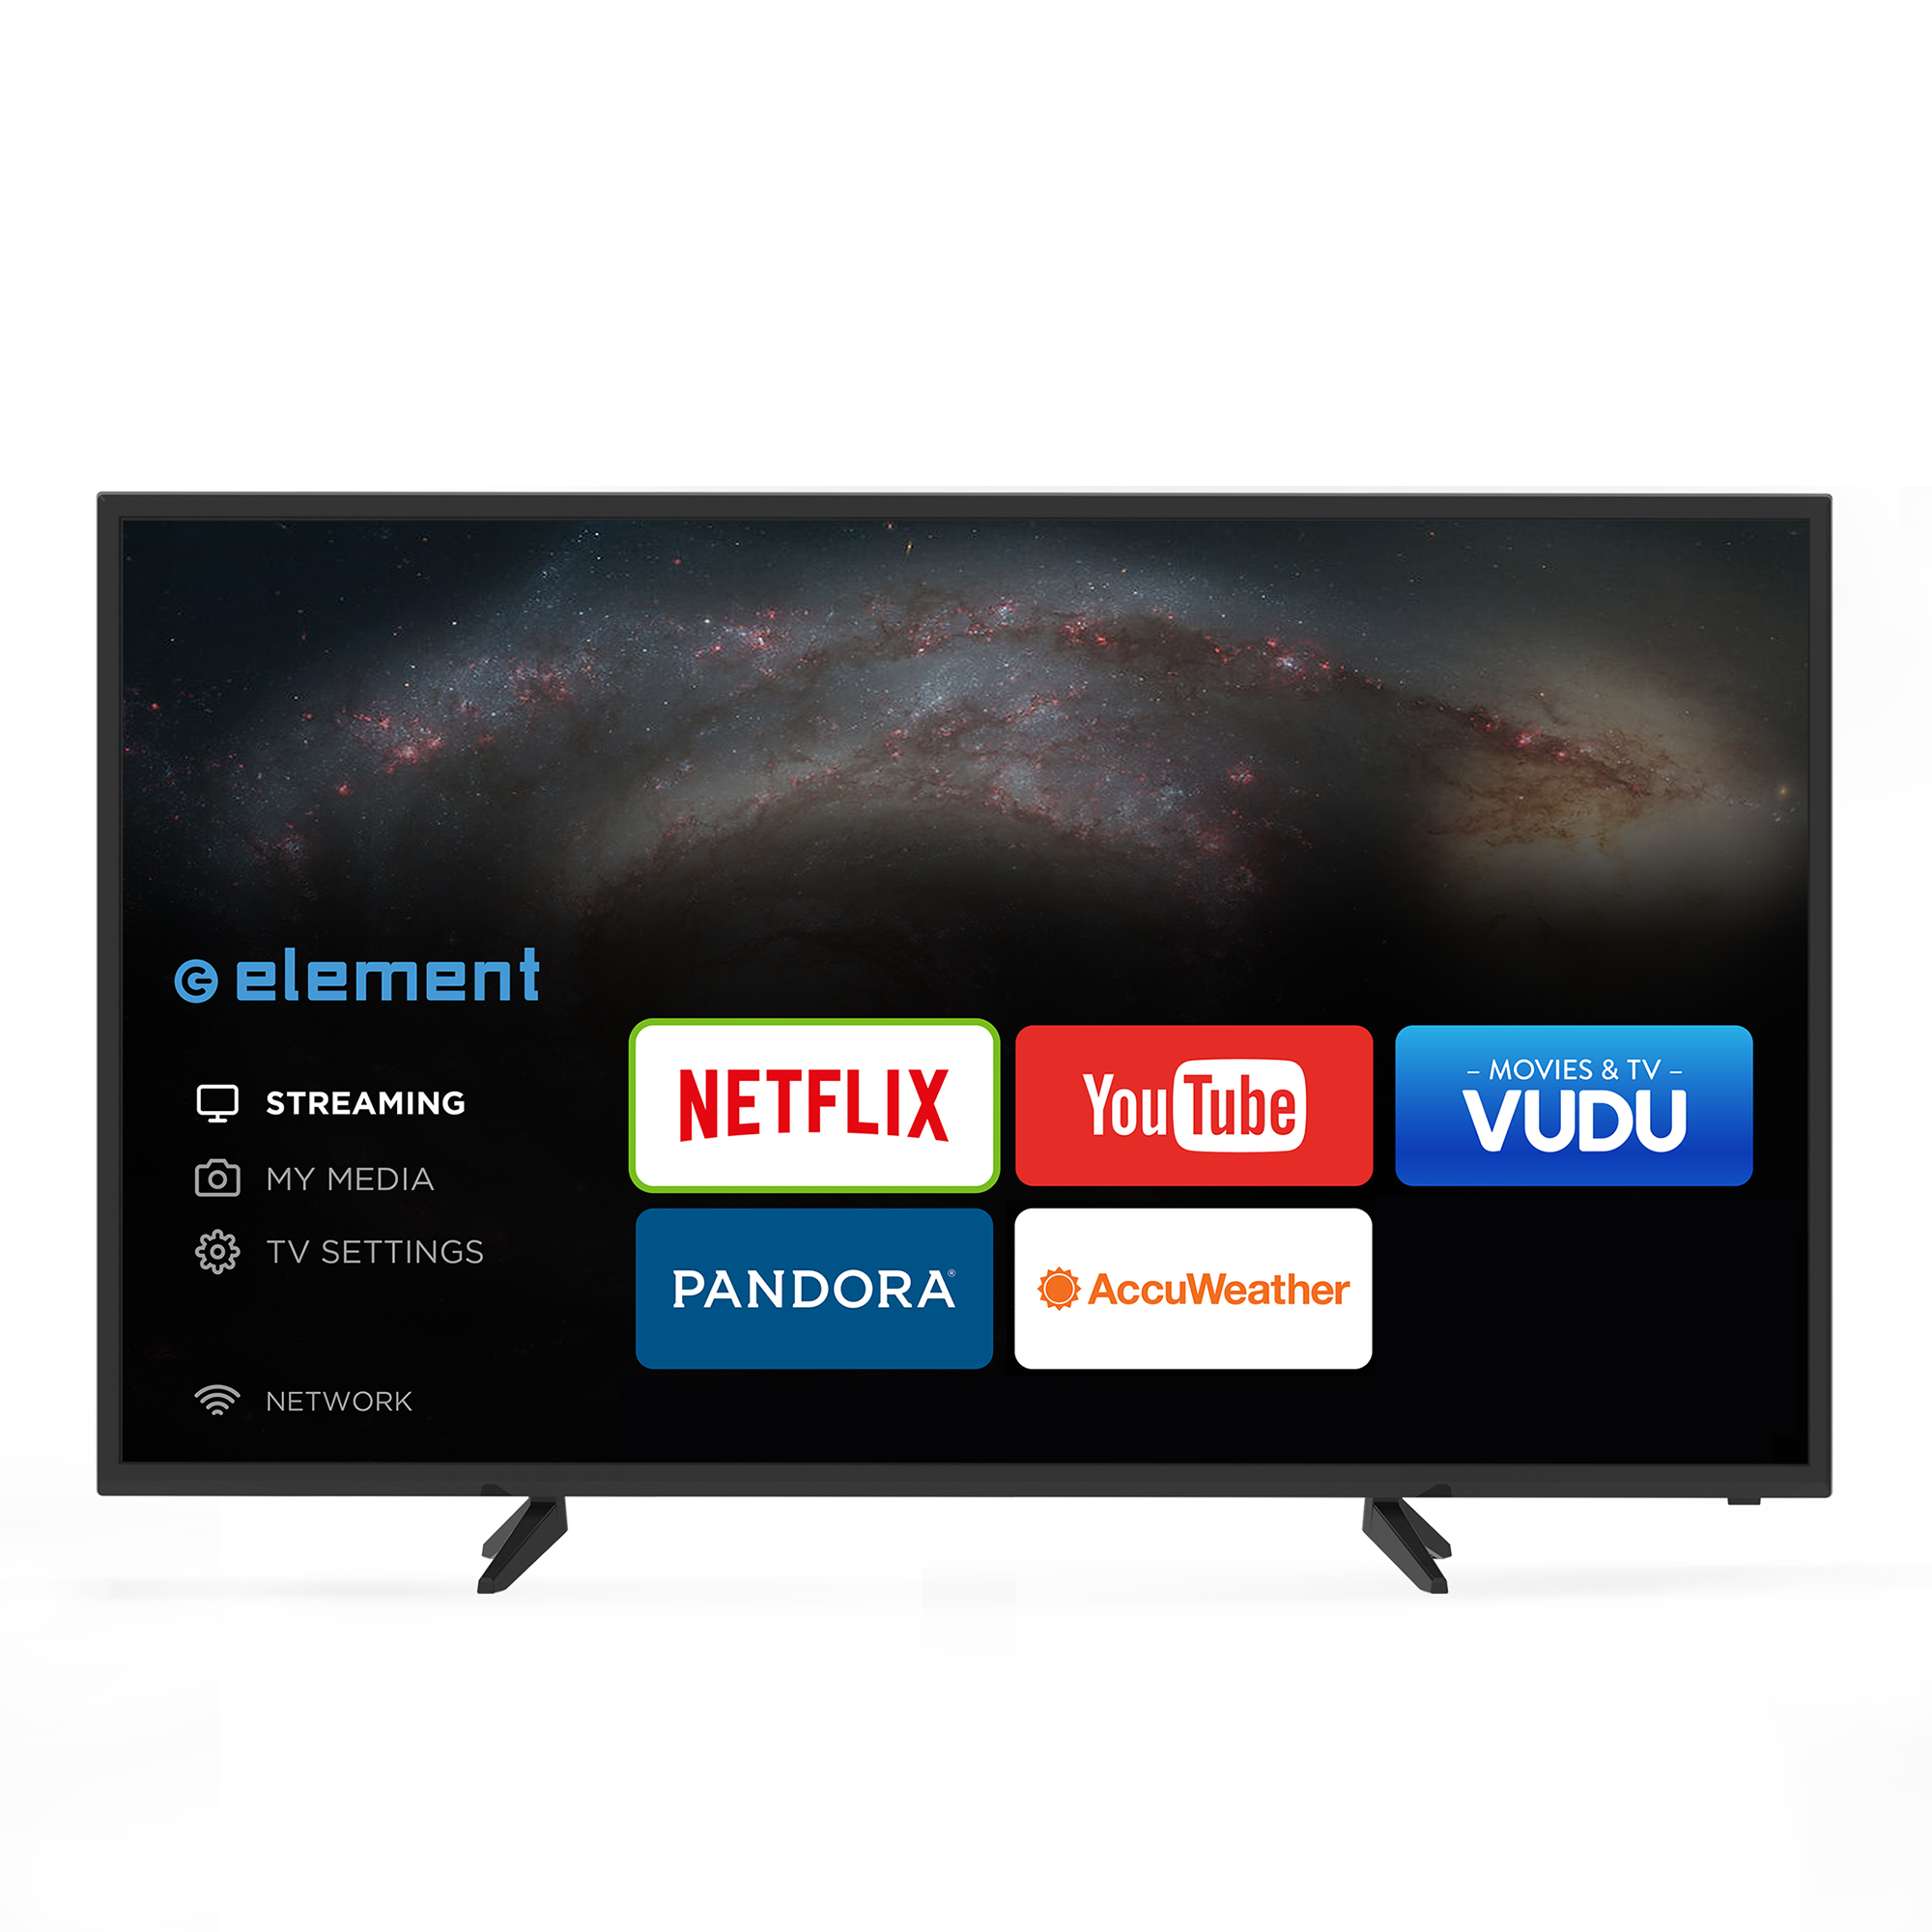 Samsung Tv Wiring Diagram on